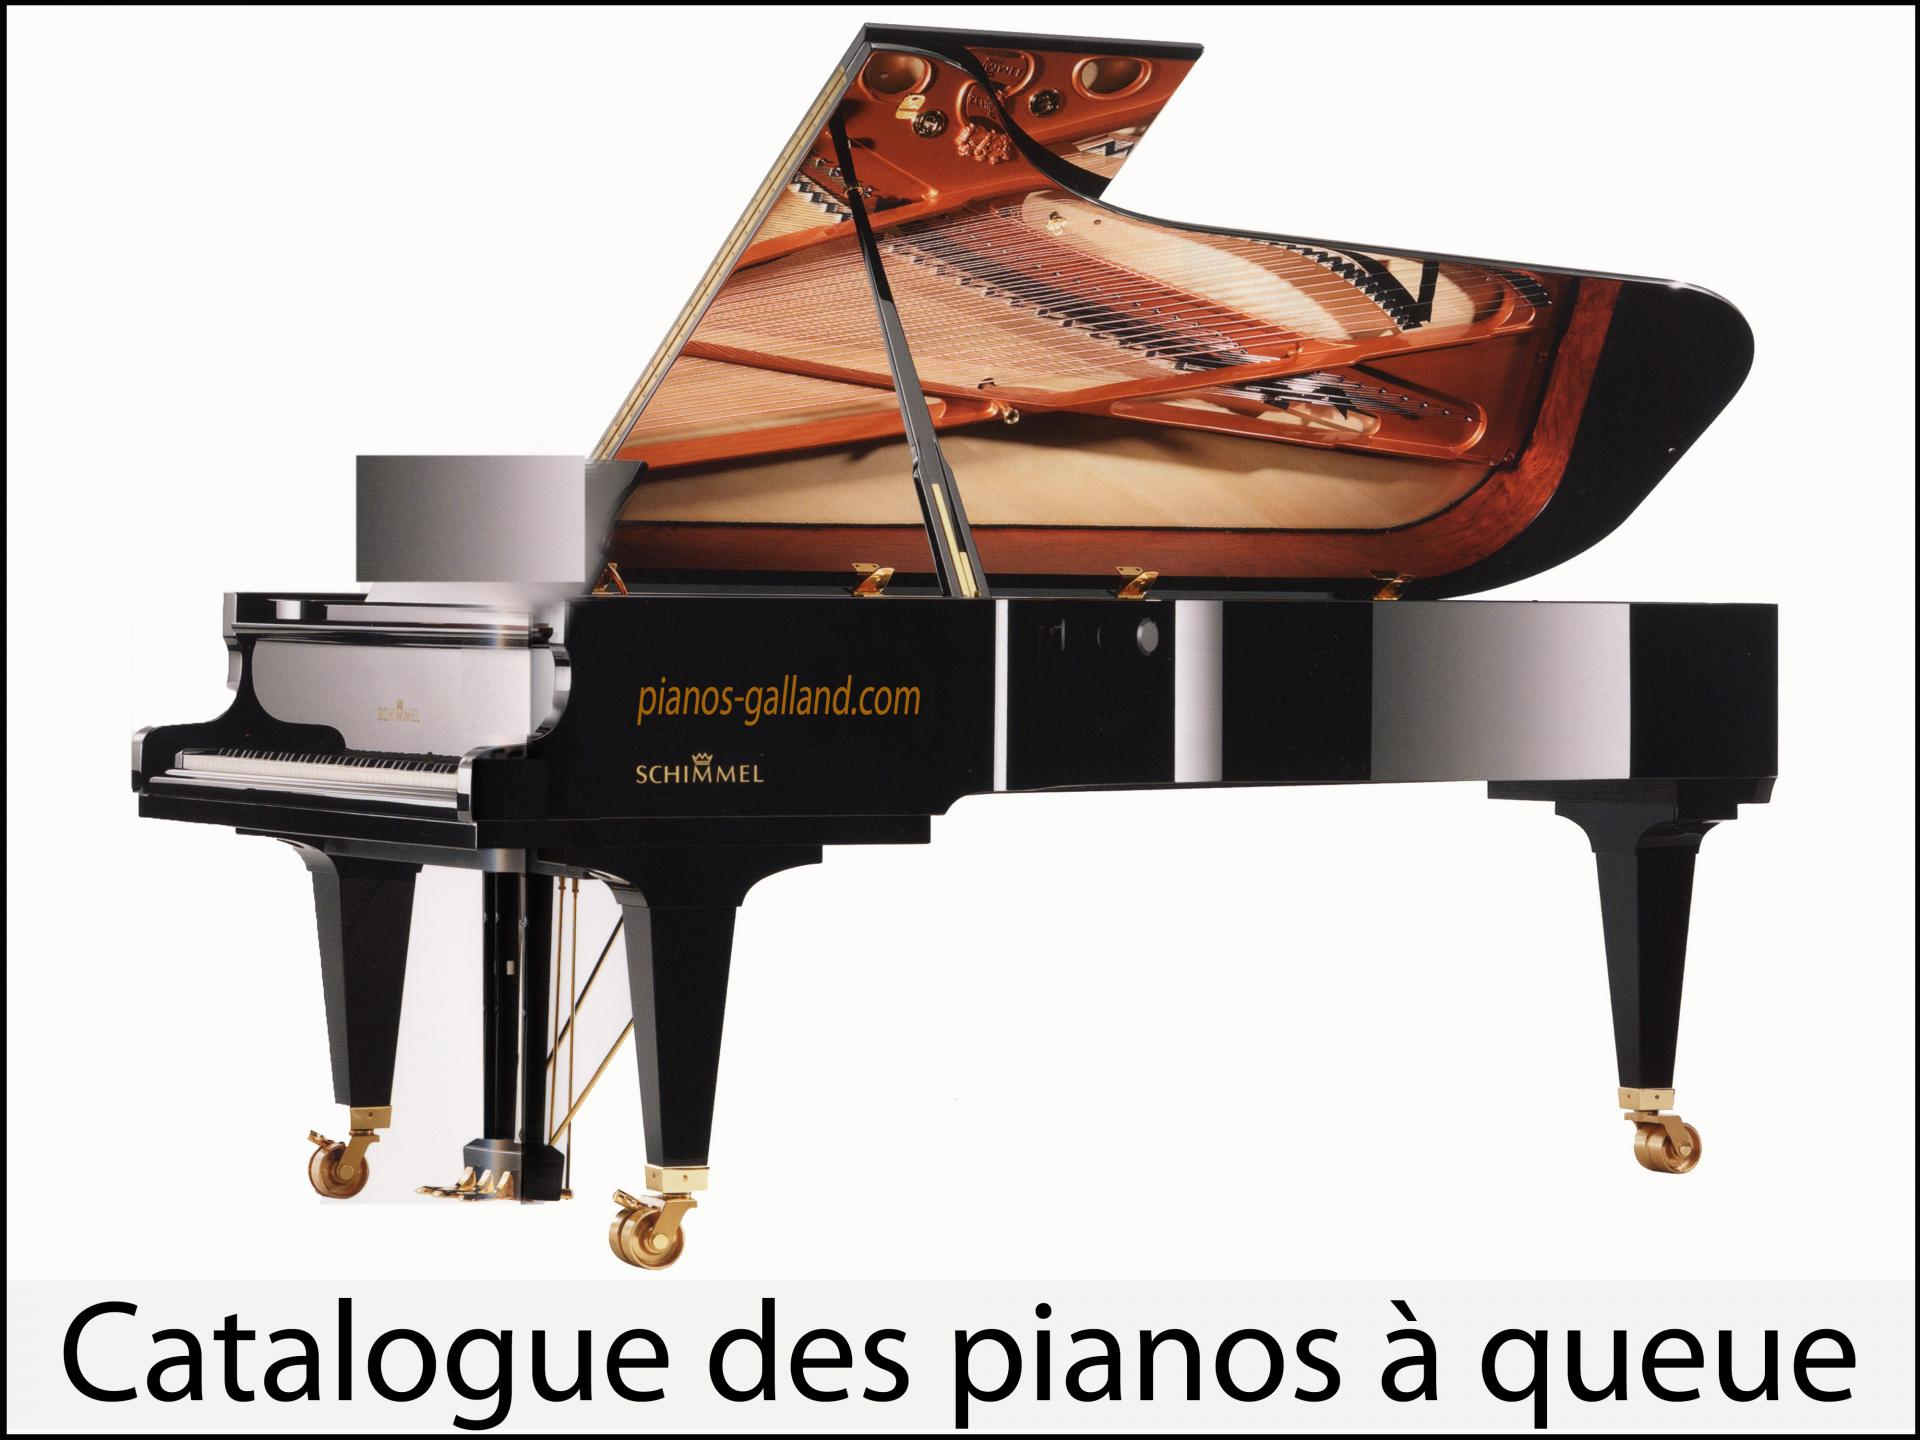 Pianos à queue